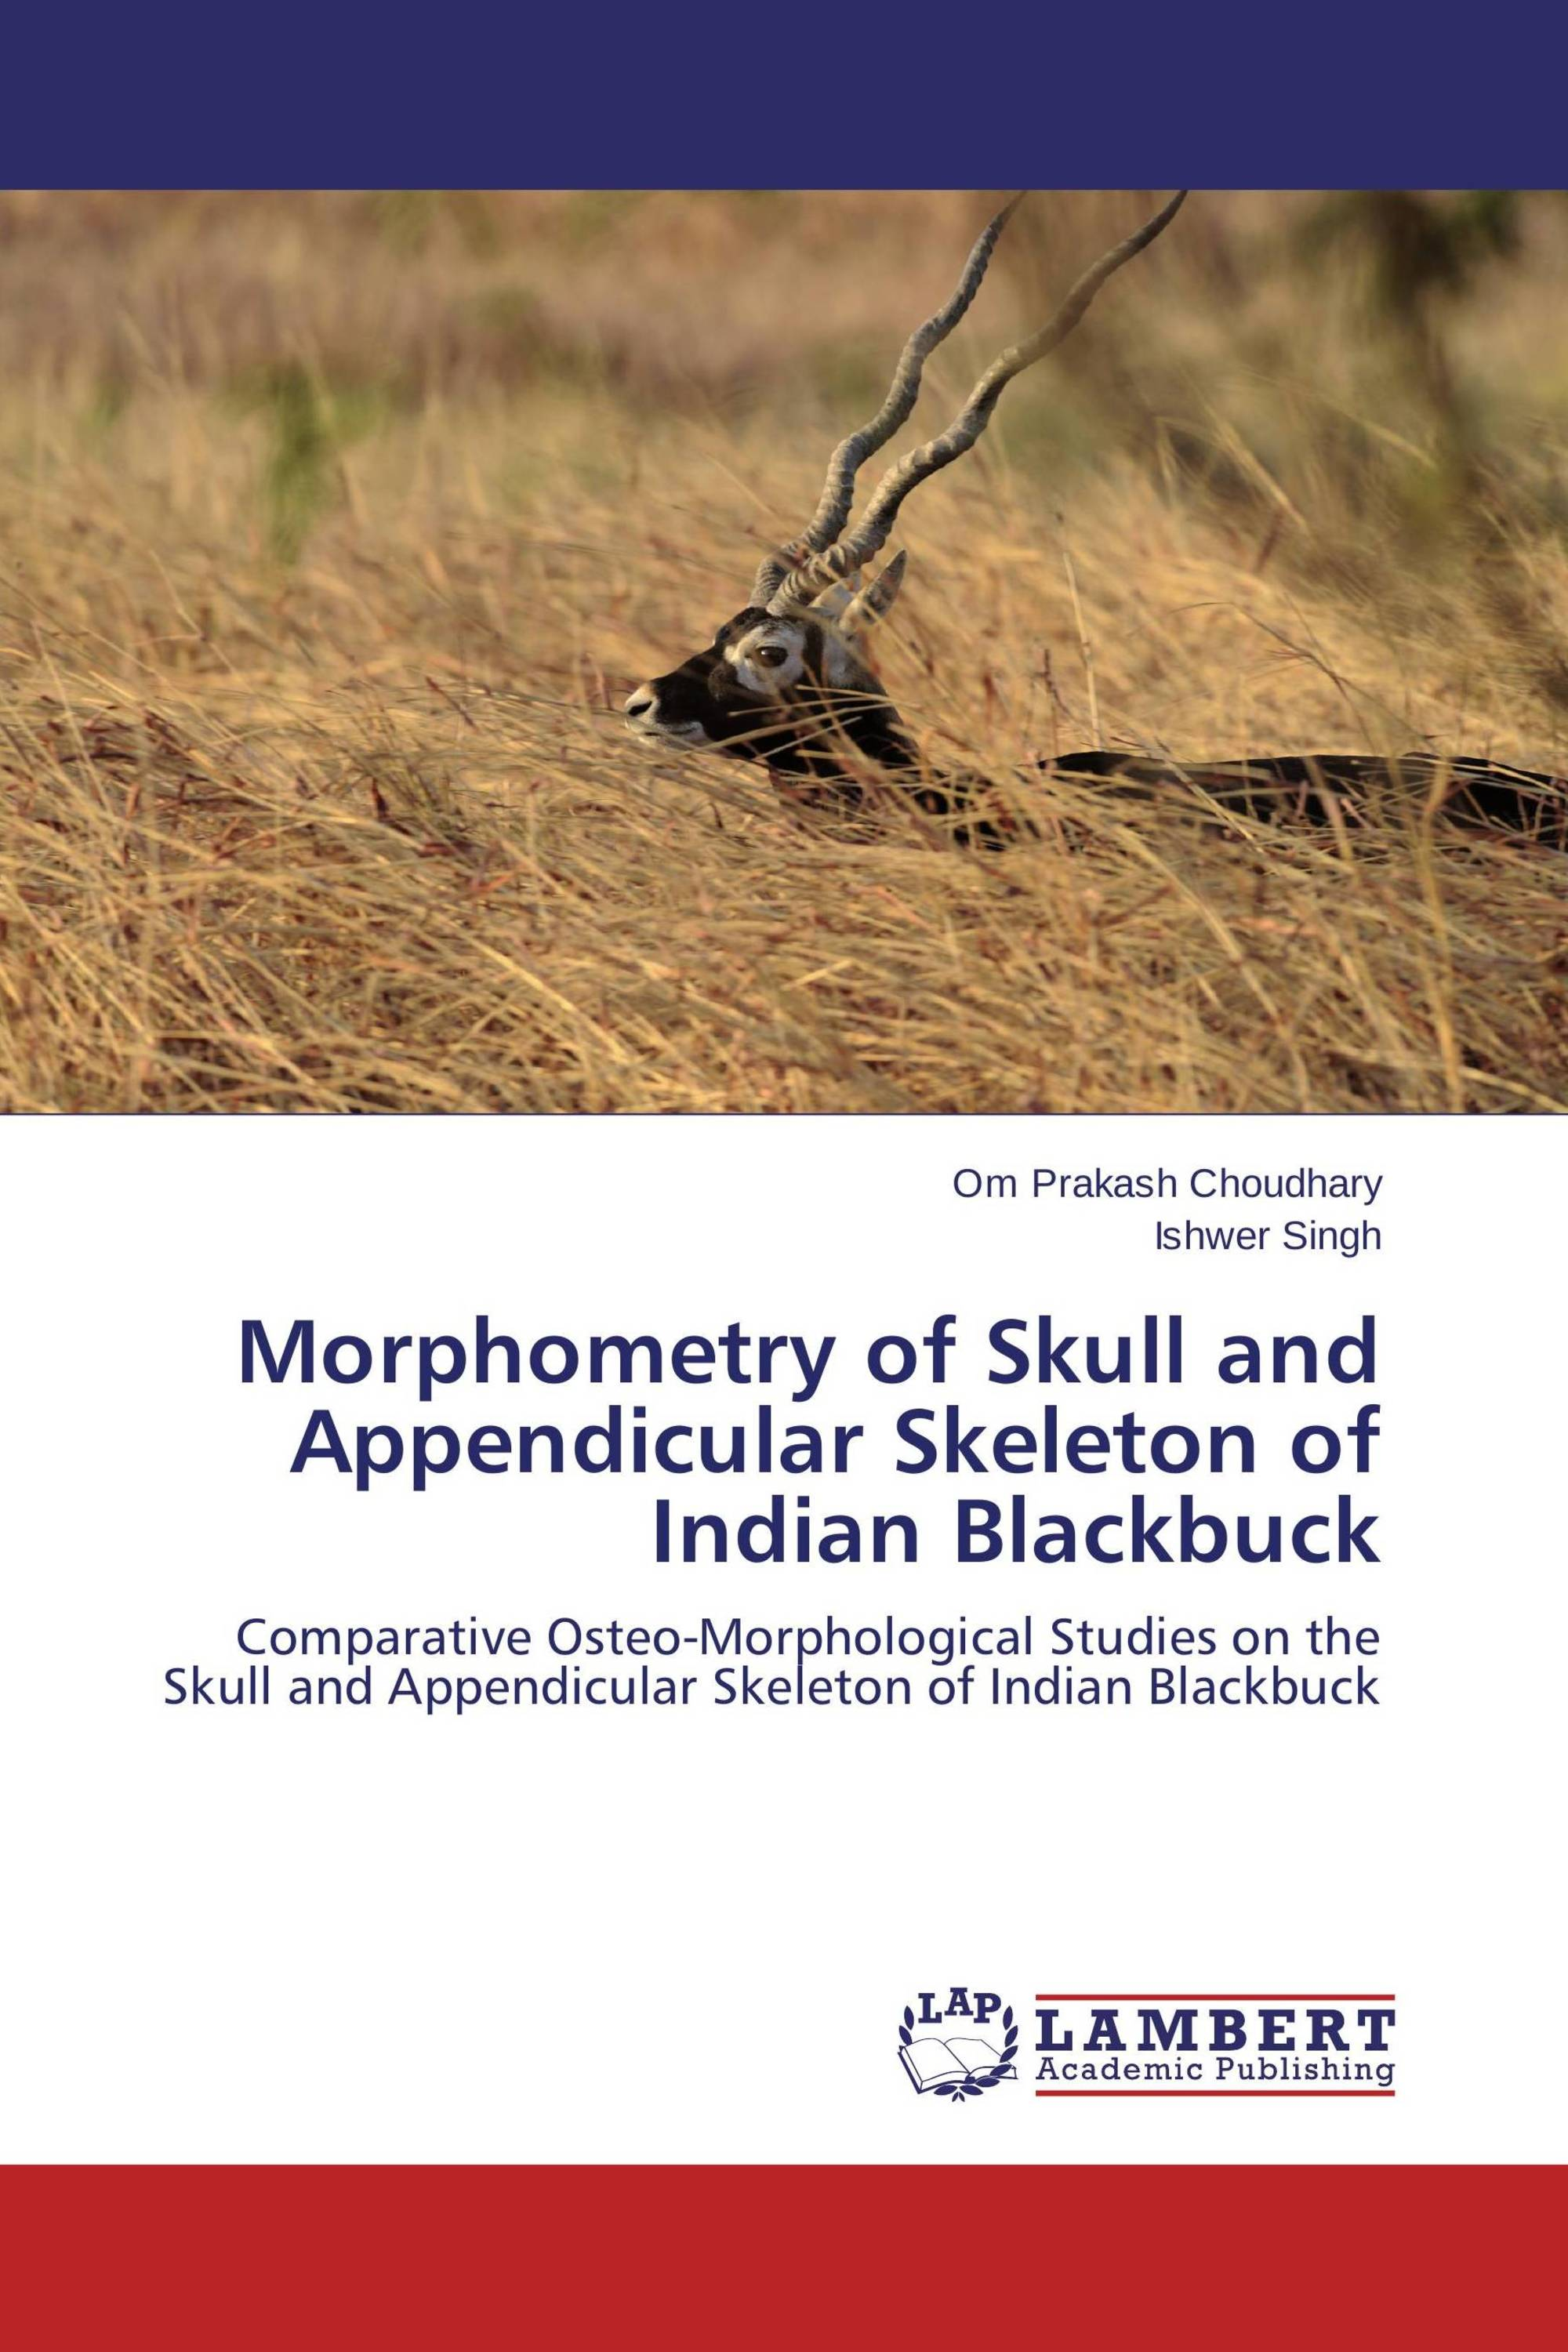 Morphometry of Skull and Appendicular Skeleton of Indian